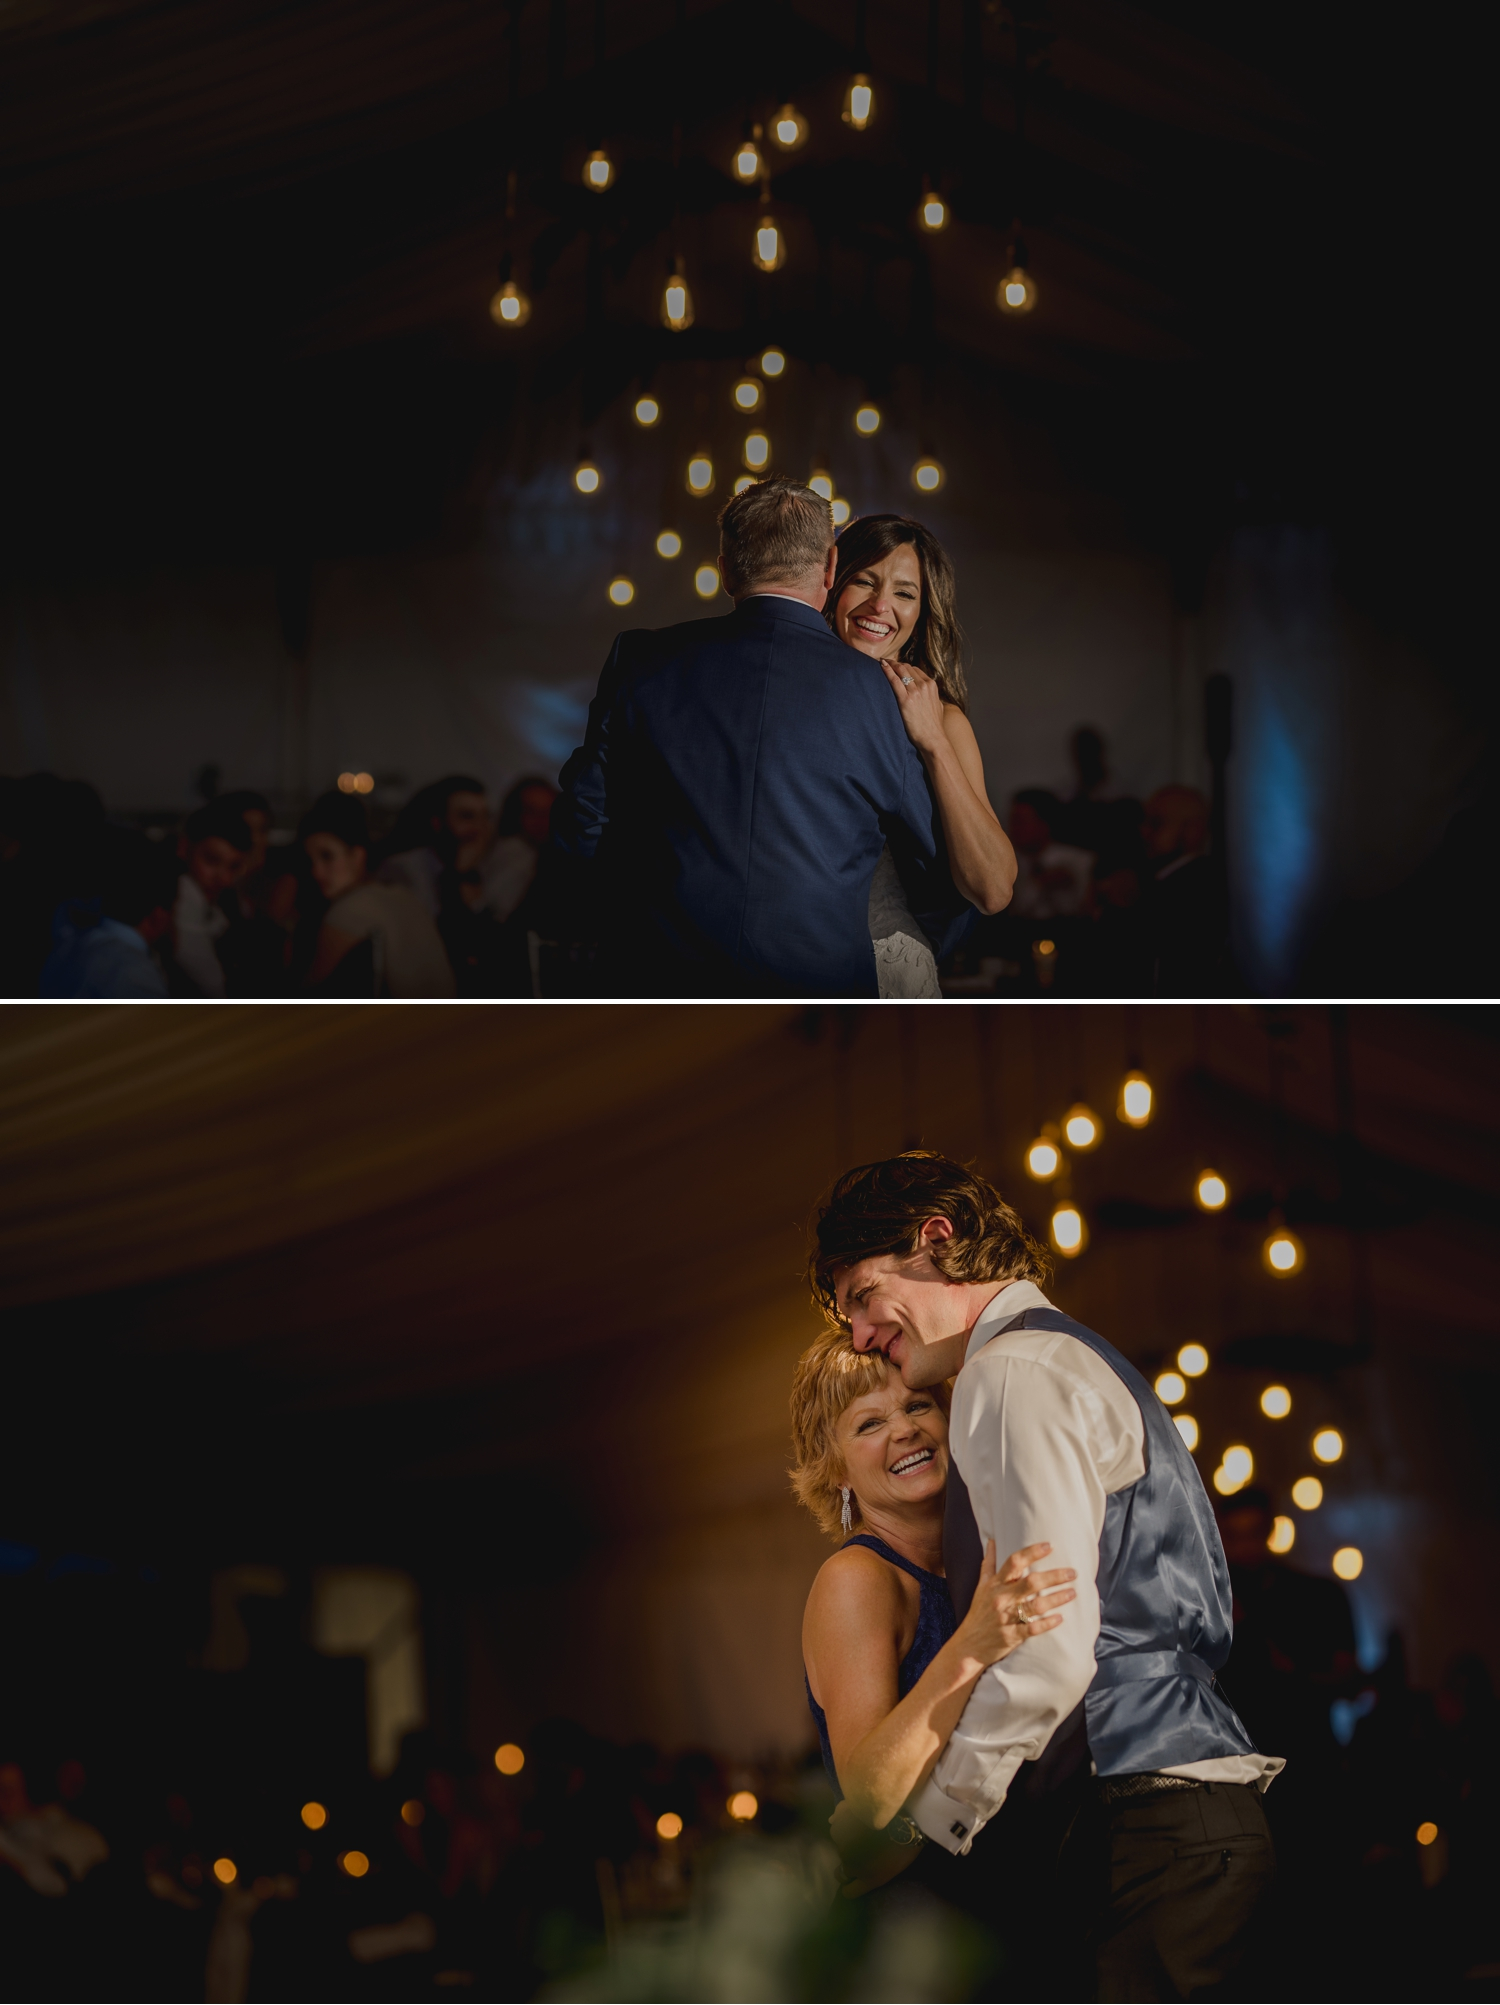 photo of bride and groom having their parent dances during a wedding reception at the ravine vineyard in niagara on the lake ontario